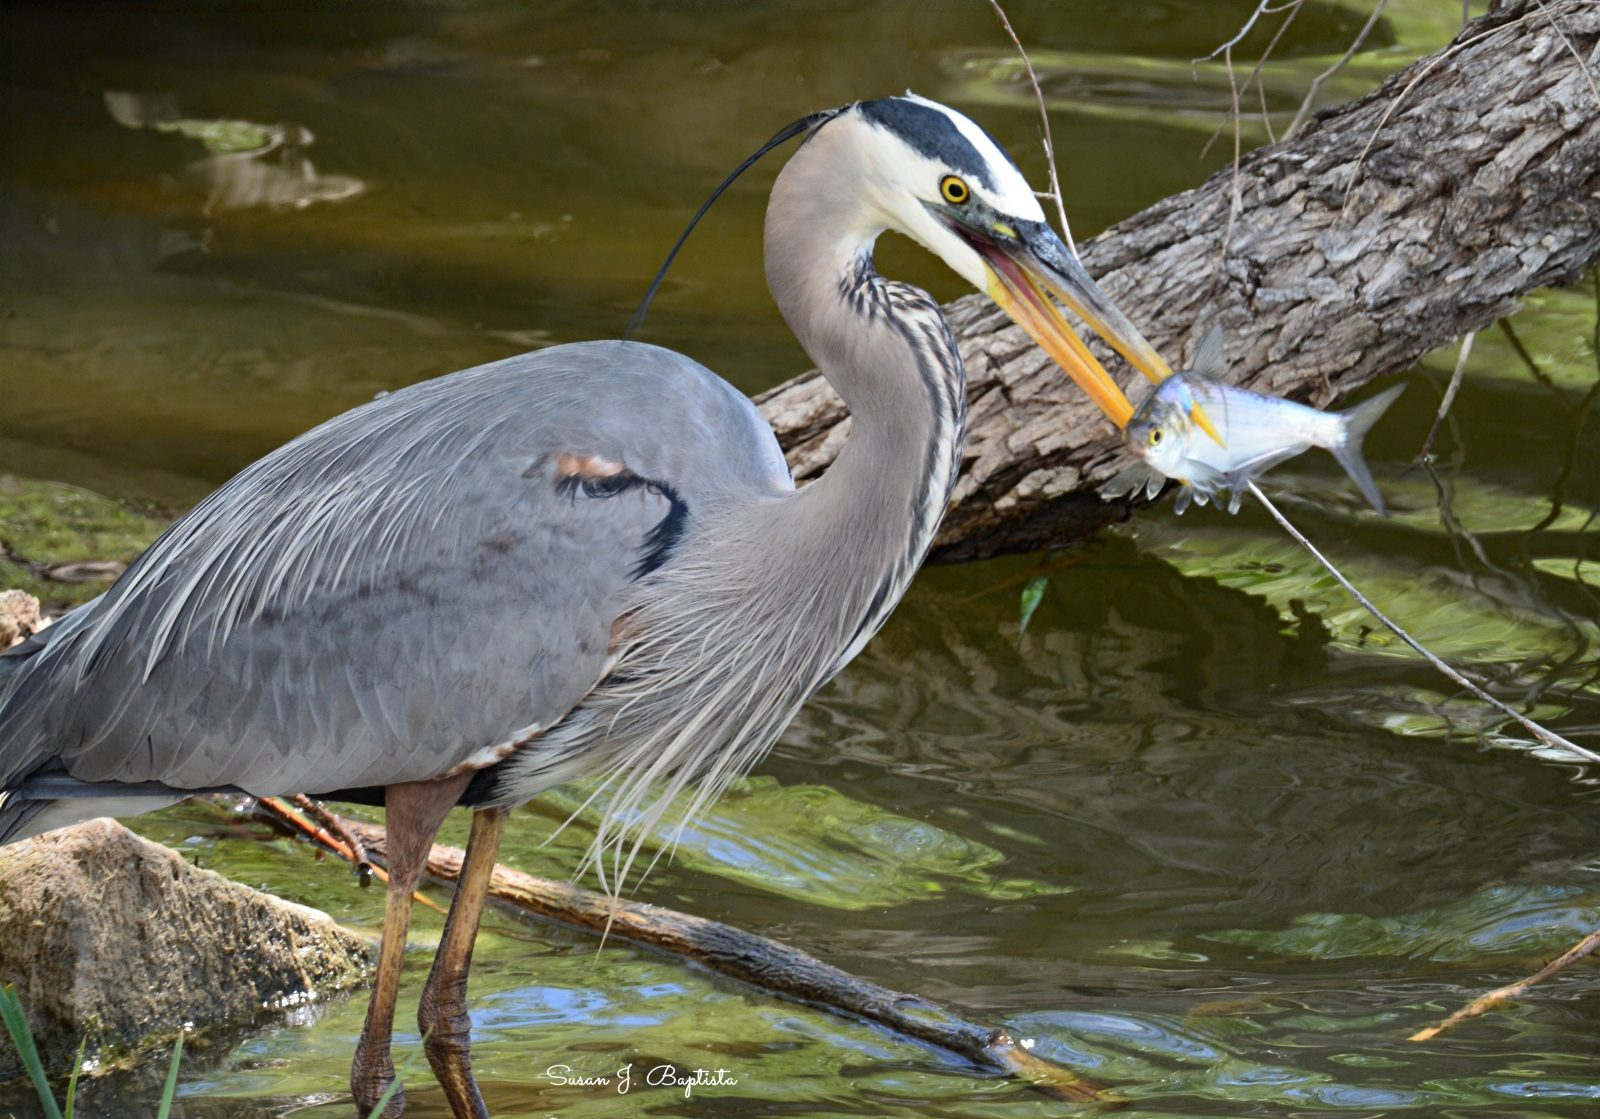 Catching A Meal